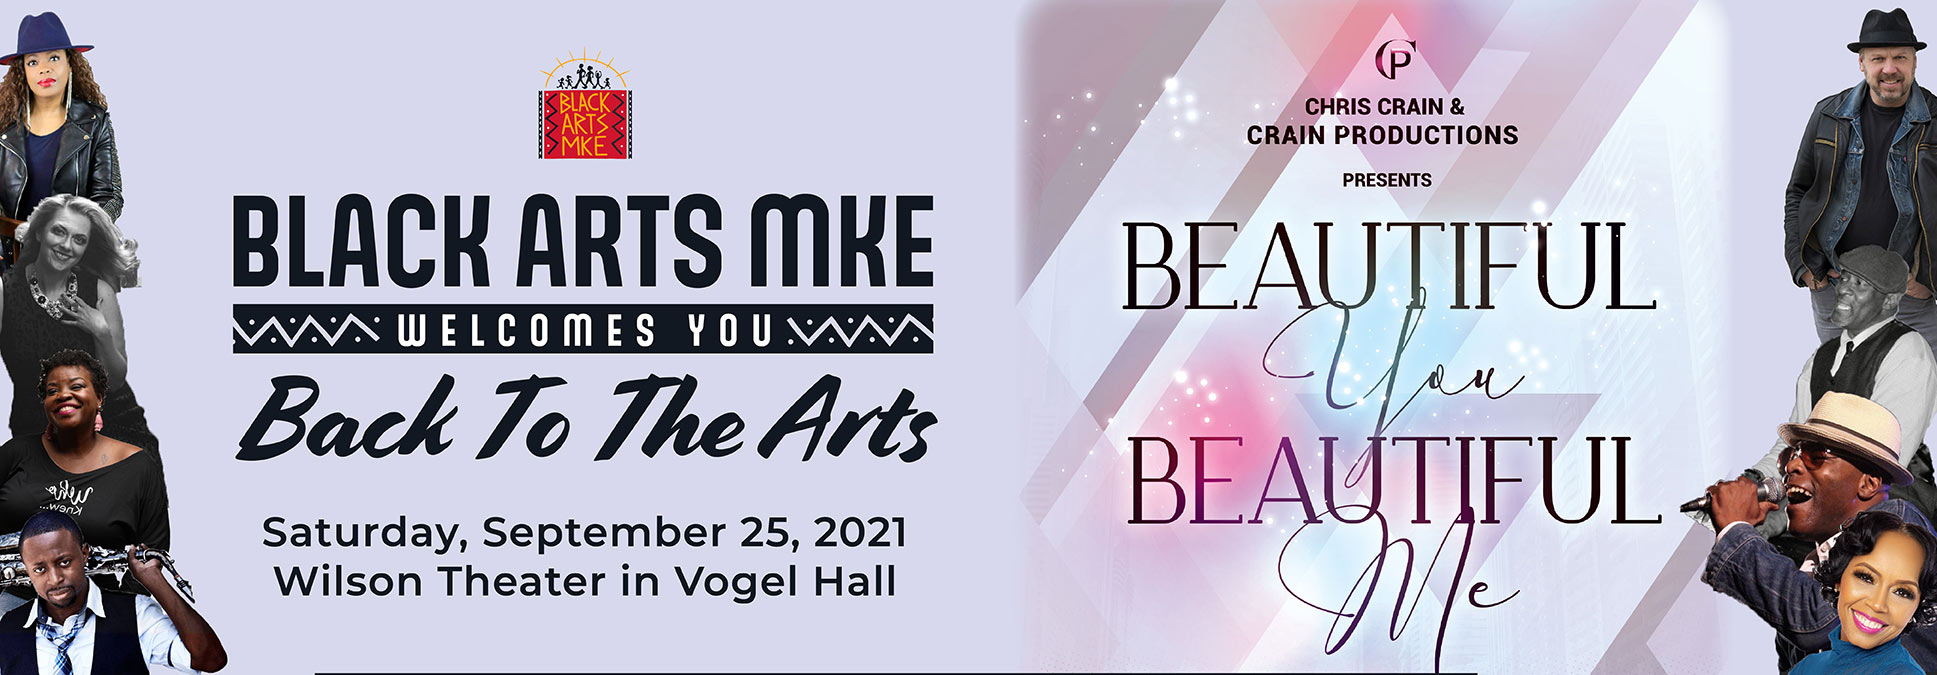 BAMKE21 Beautiful You Beautiful Me at the Marcus Performing Arts Center in Milwaukee